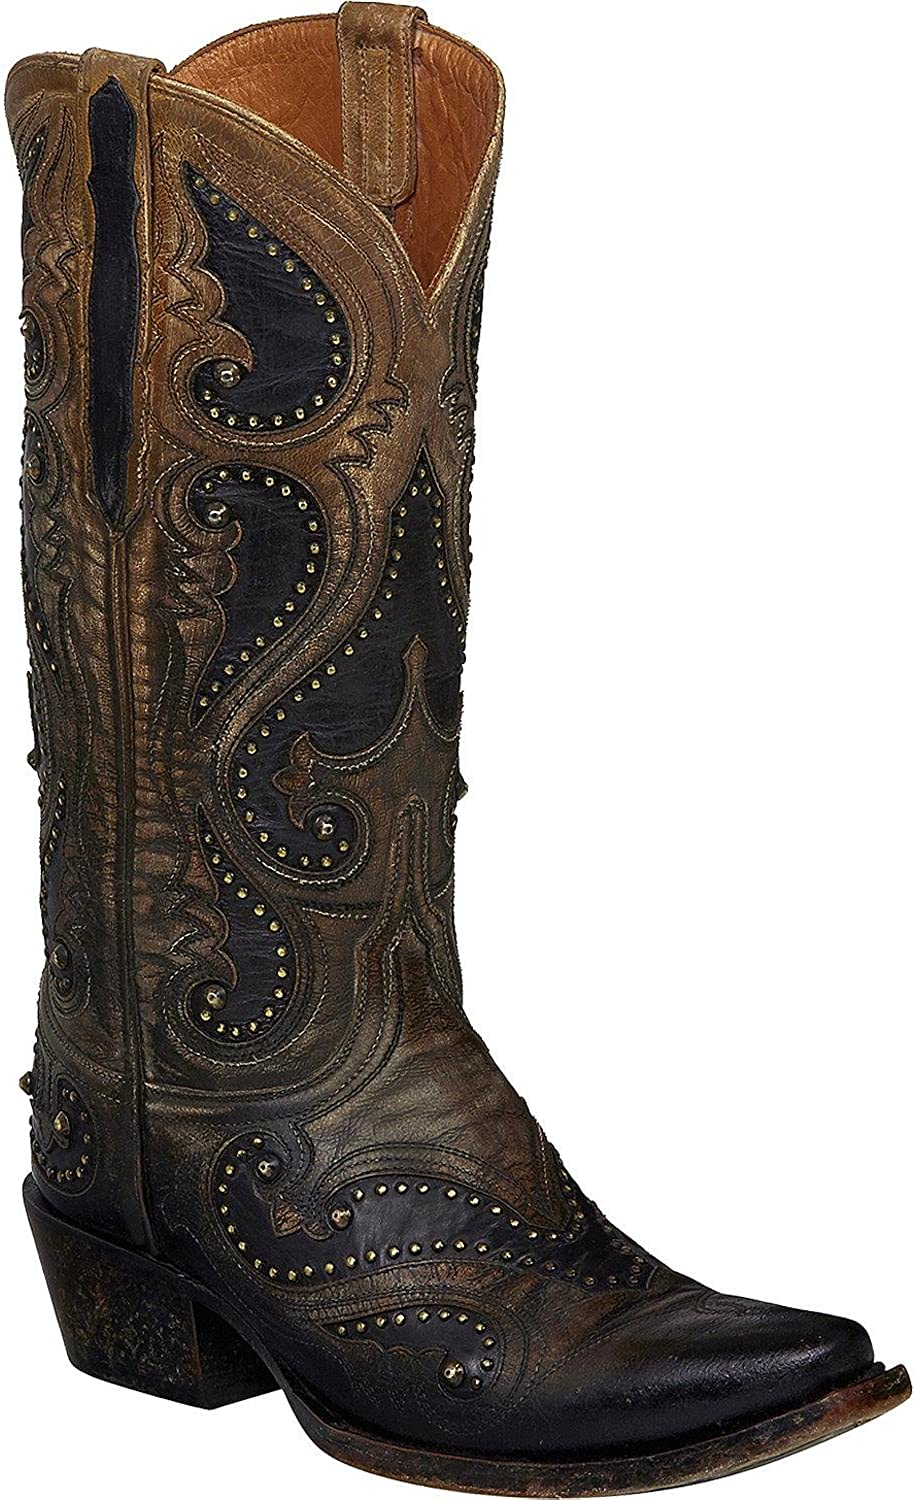 Lucchese Women's Ombre Gemma Cowgirl Boot Snip Toe - M5116